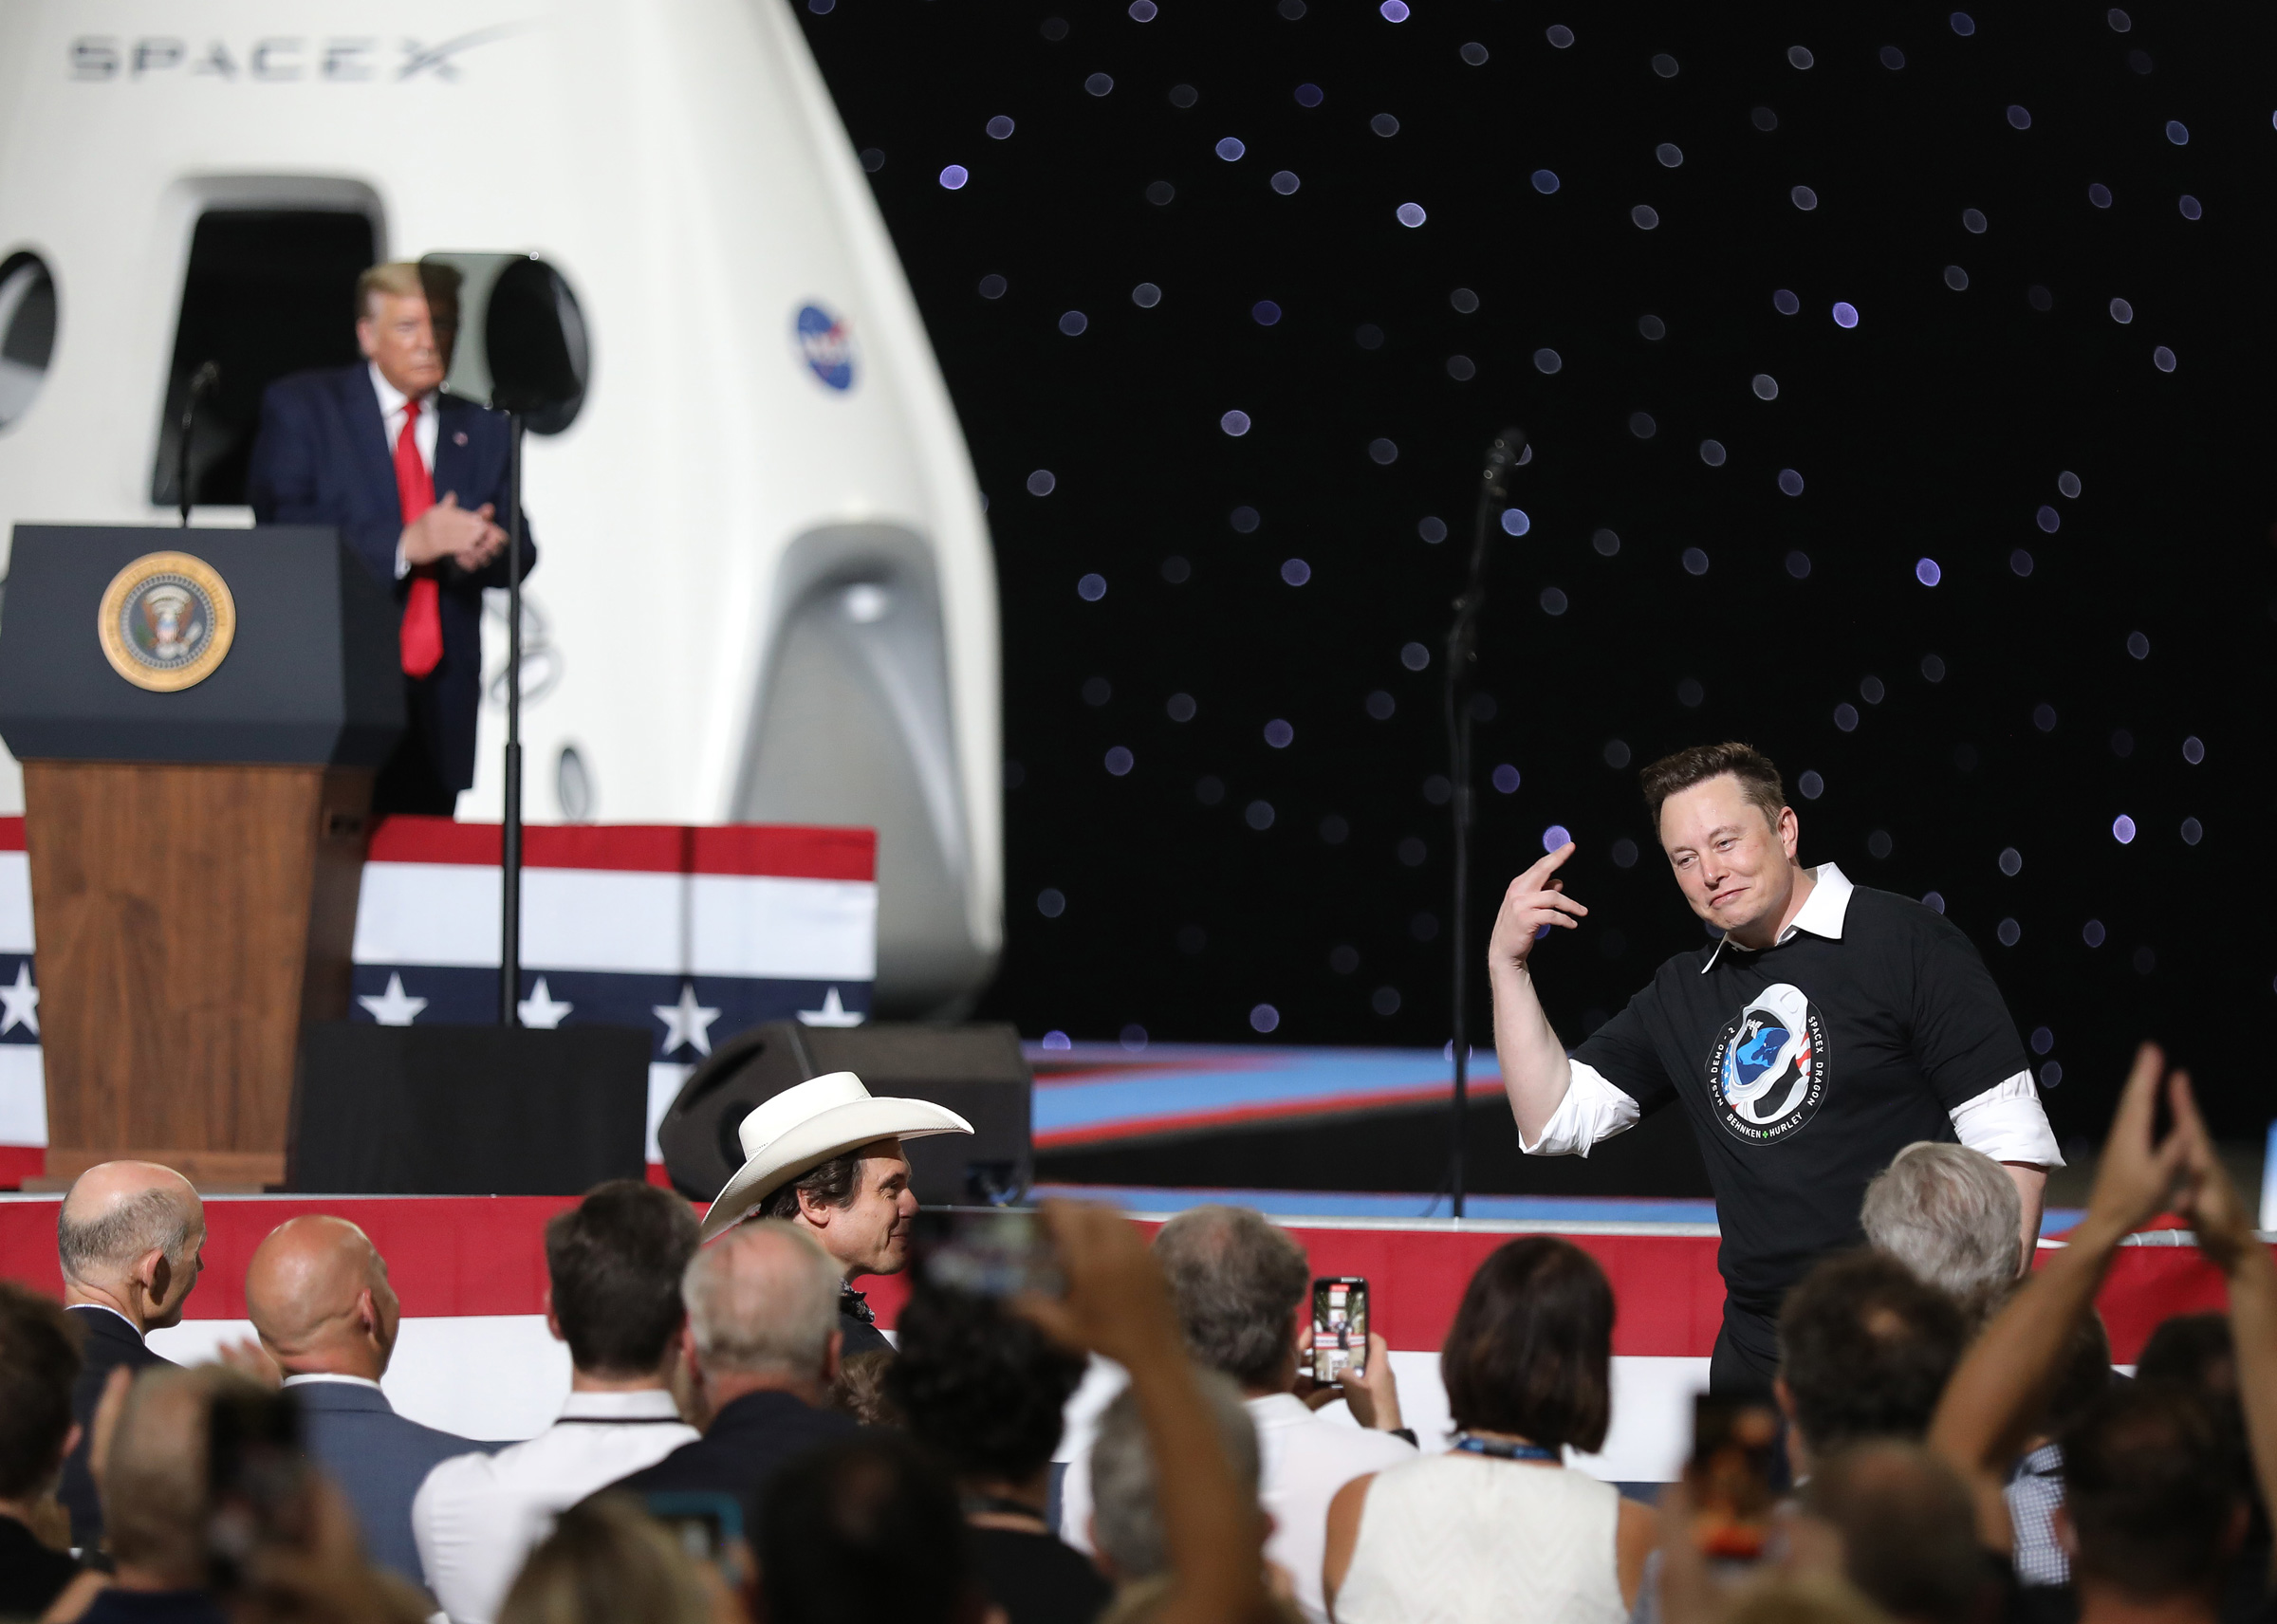 Donald Trump and Elon Musk, two white men, stand together on a stage in front of a white SpaceX vessel